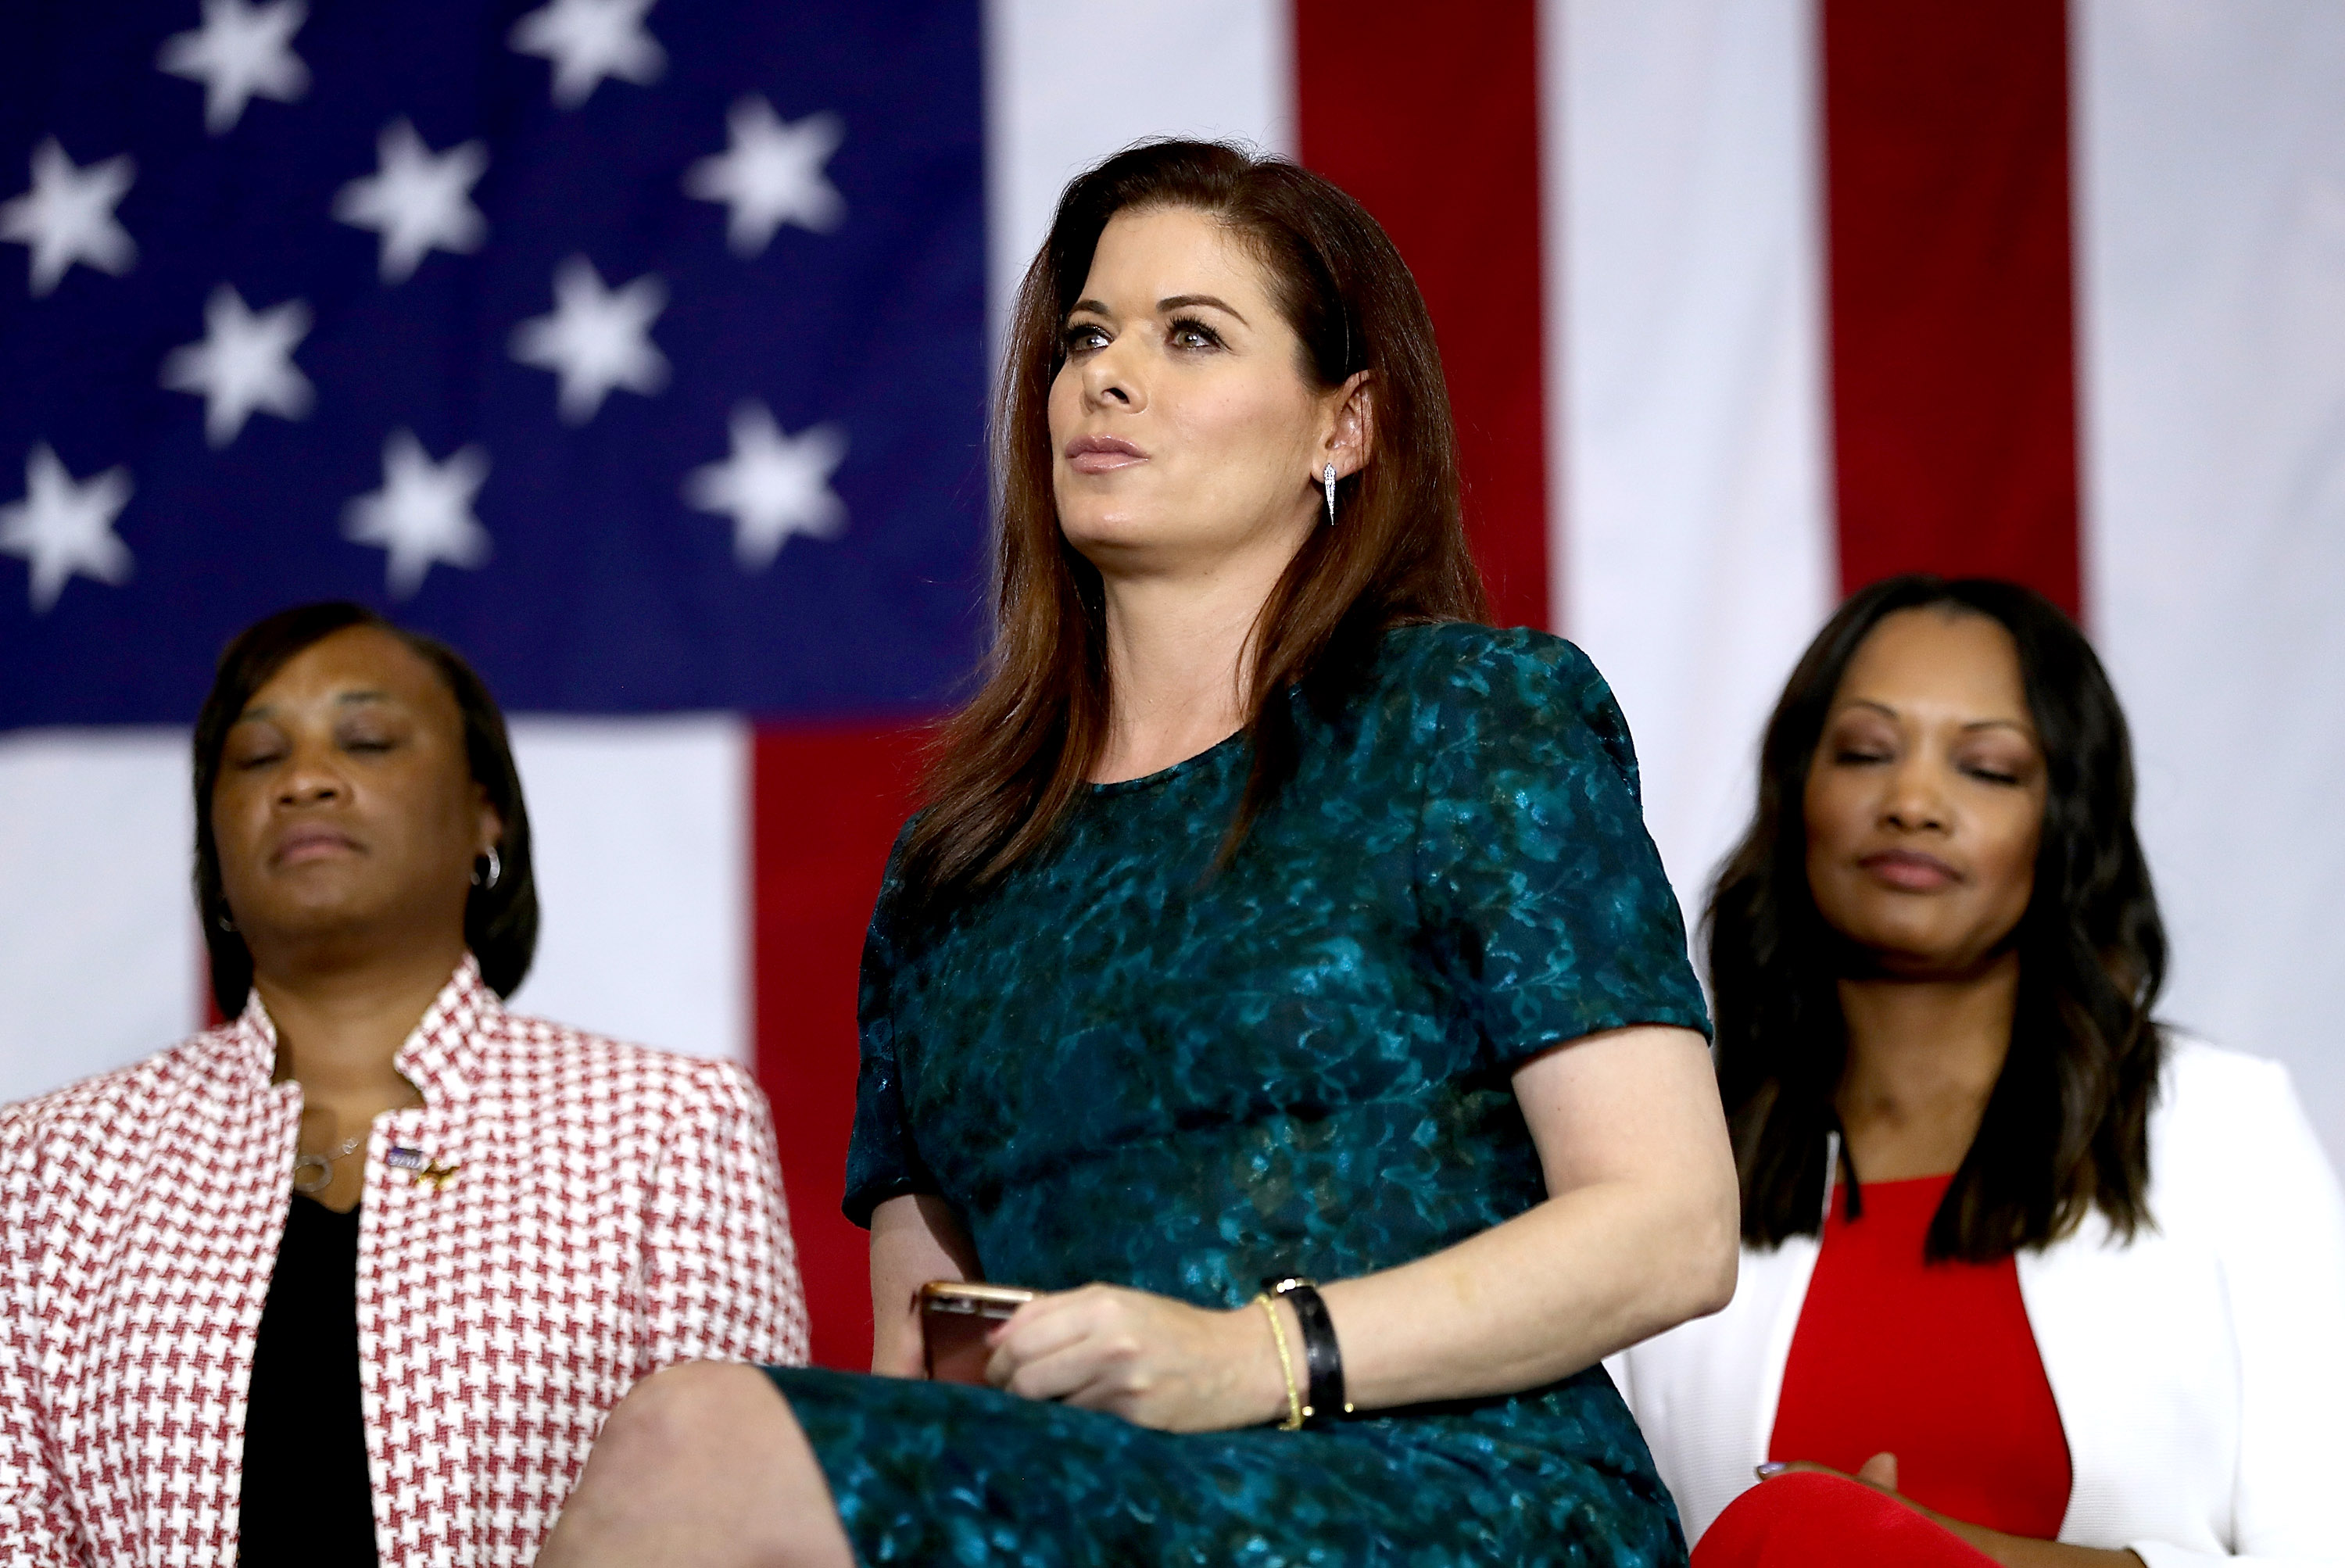 Actress Debra Messing looks on during a Women for Hillary Organizing event at West Los Angeles College on June 3, 2016 in Culver City, Calif.